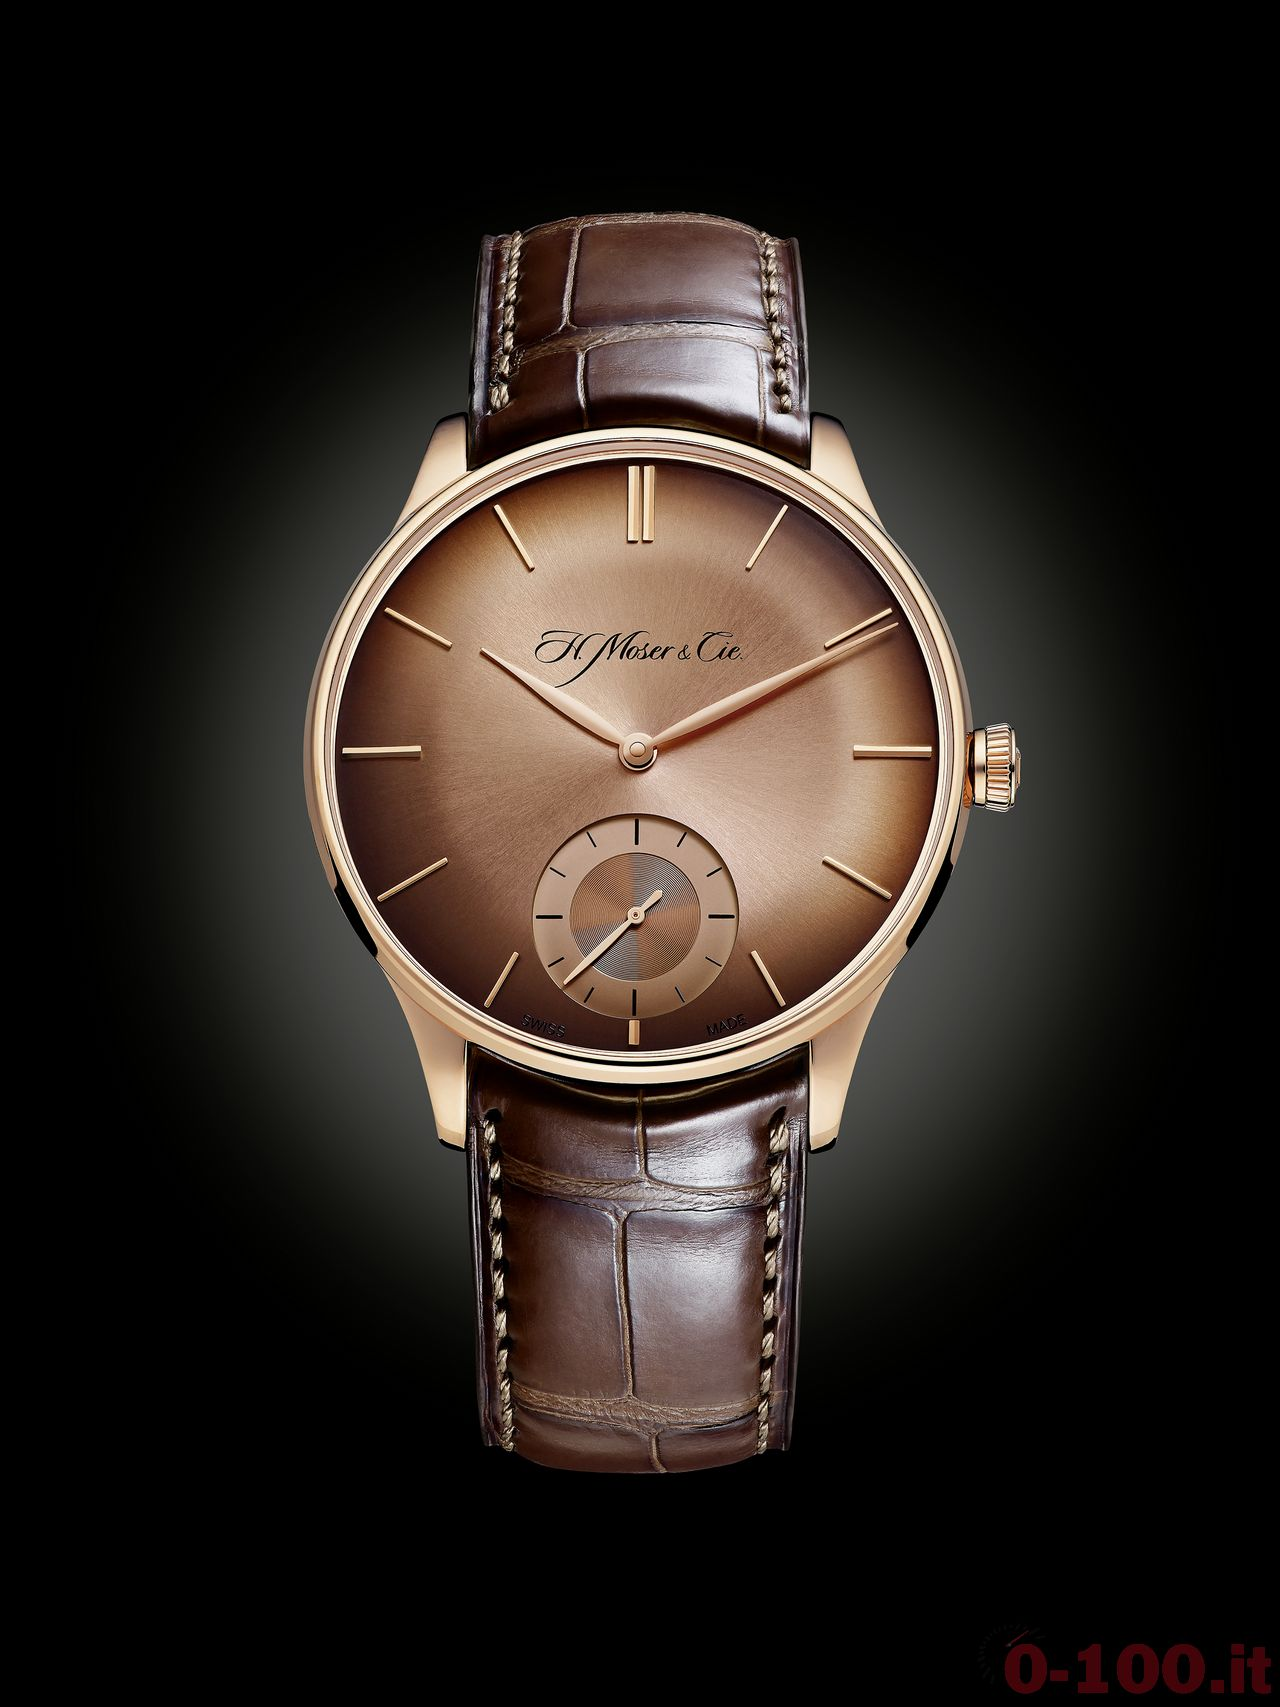 Baselworld-2014-H. Moser & Cie Venturer Small Seconds _0-1006